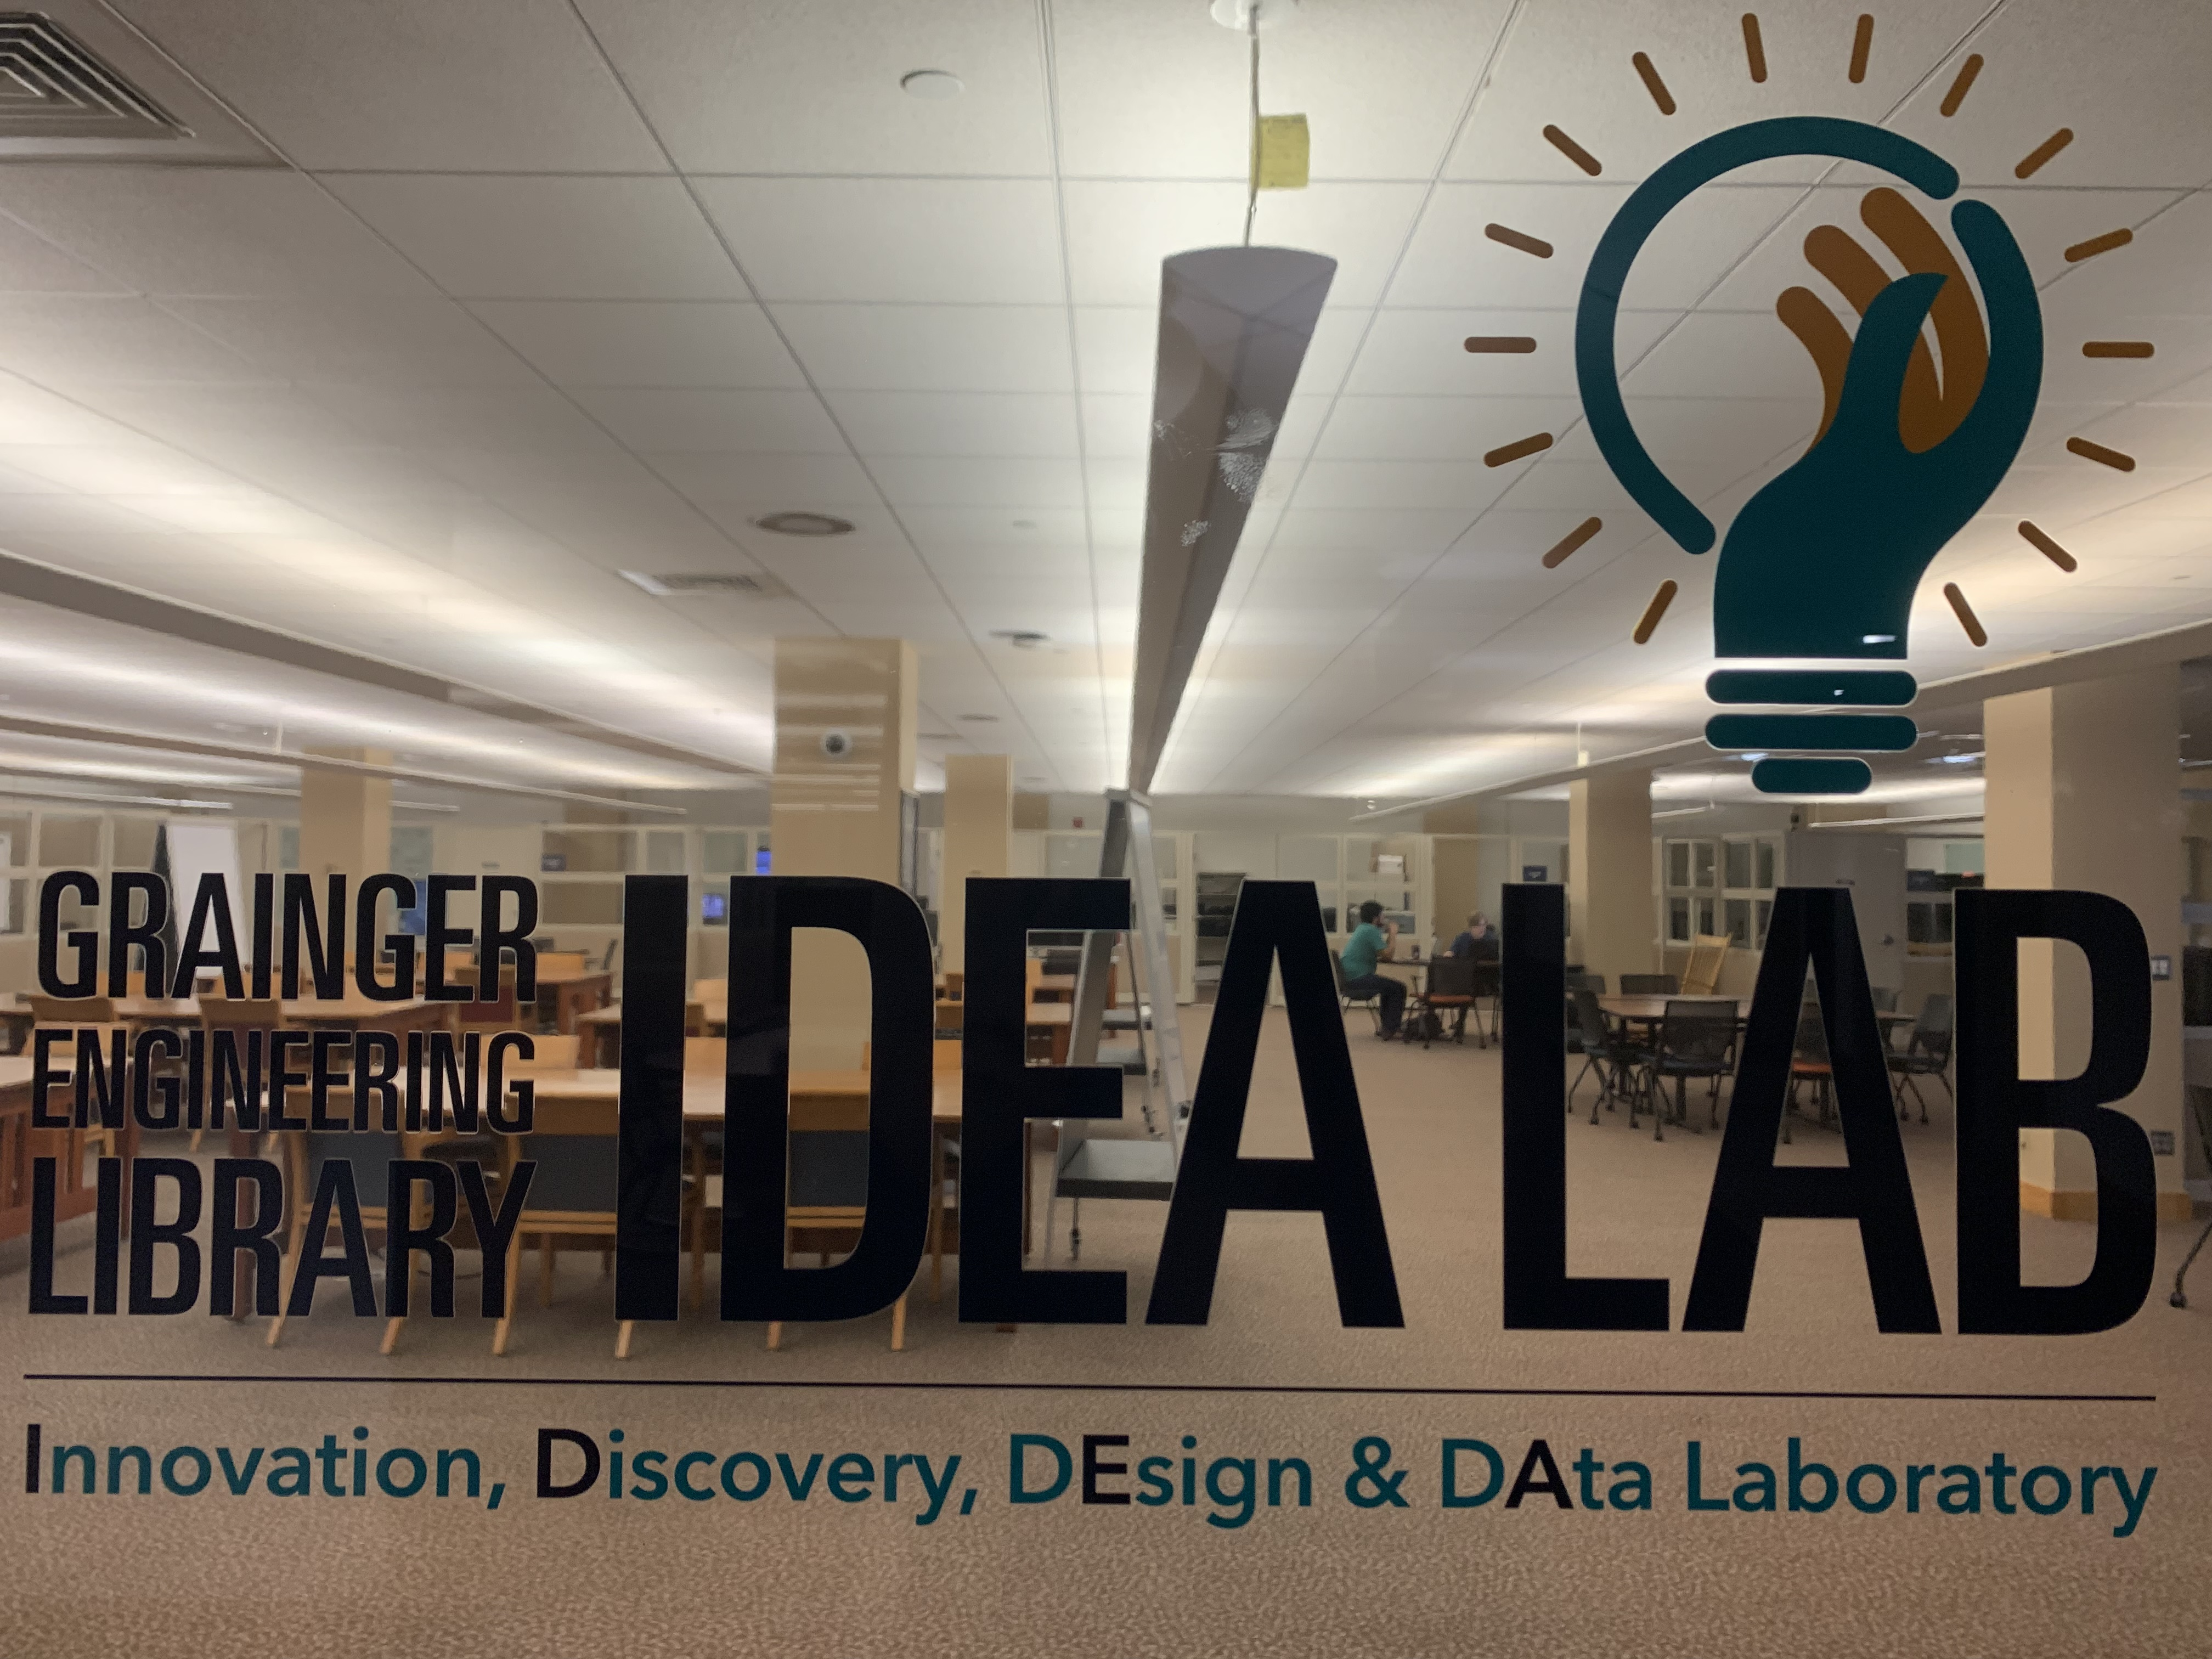 IDEA Lab Access Request. Submit a proposal for access. Please note that access must be renewed each semester.